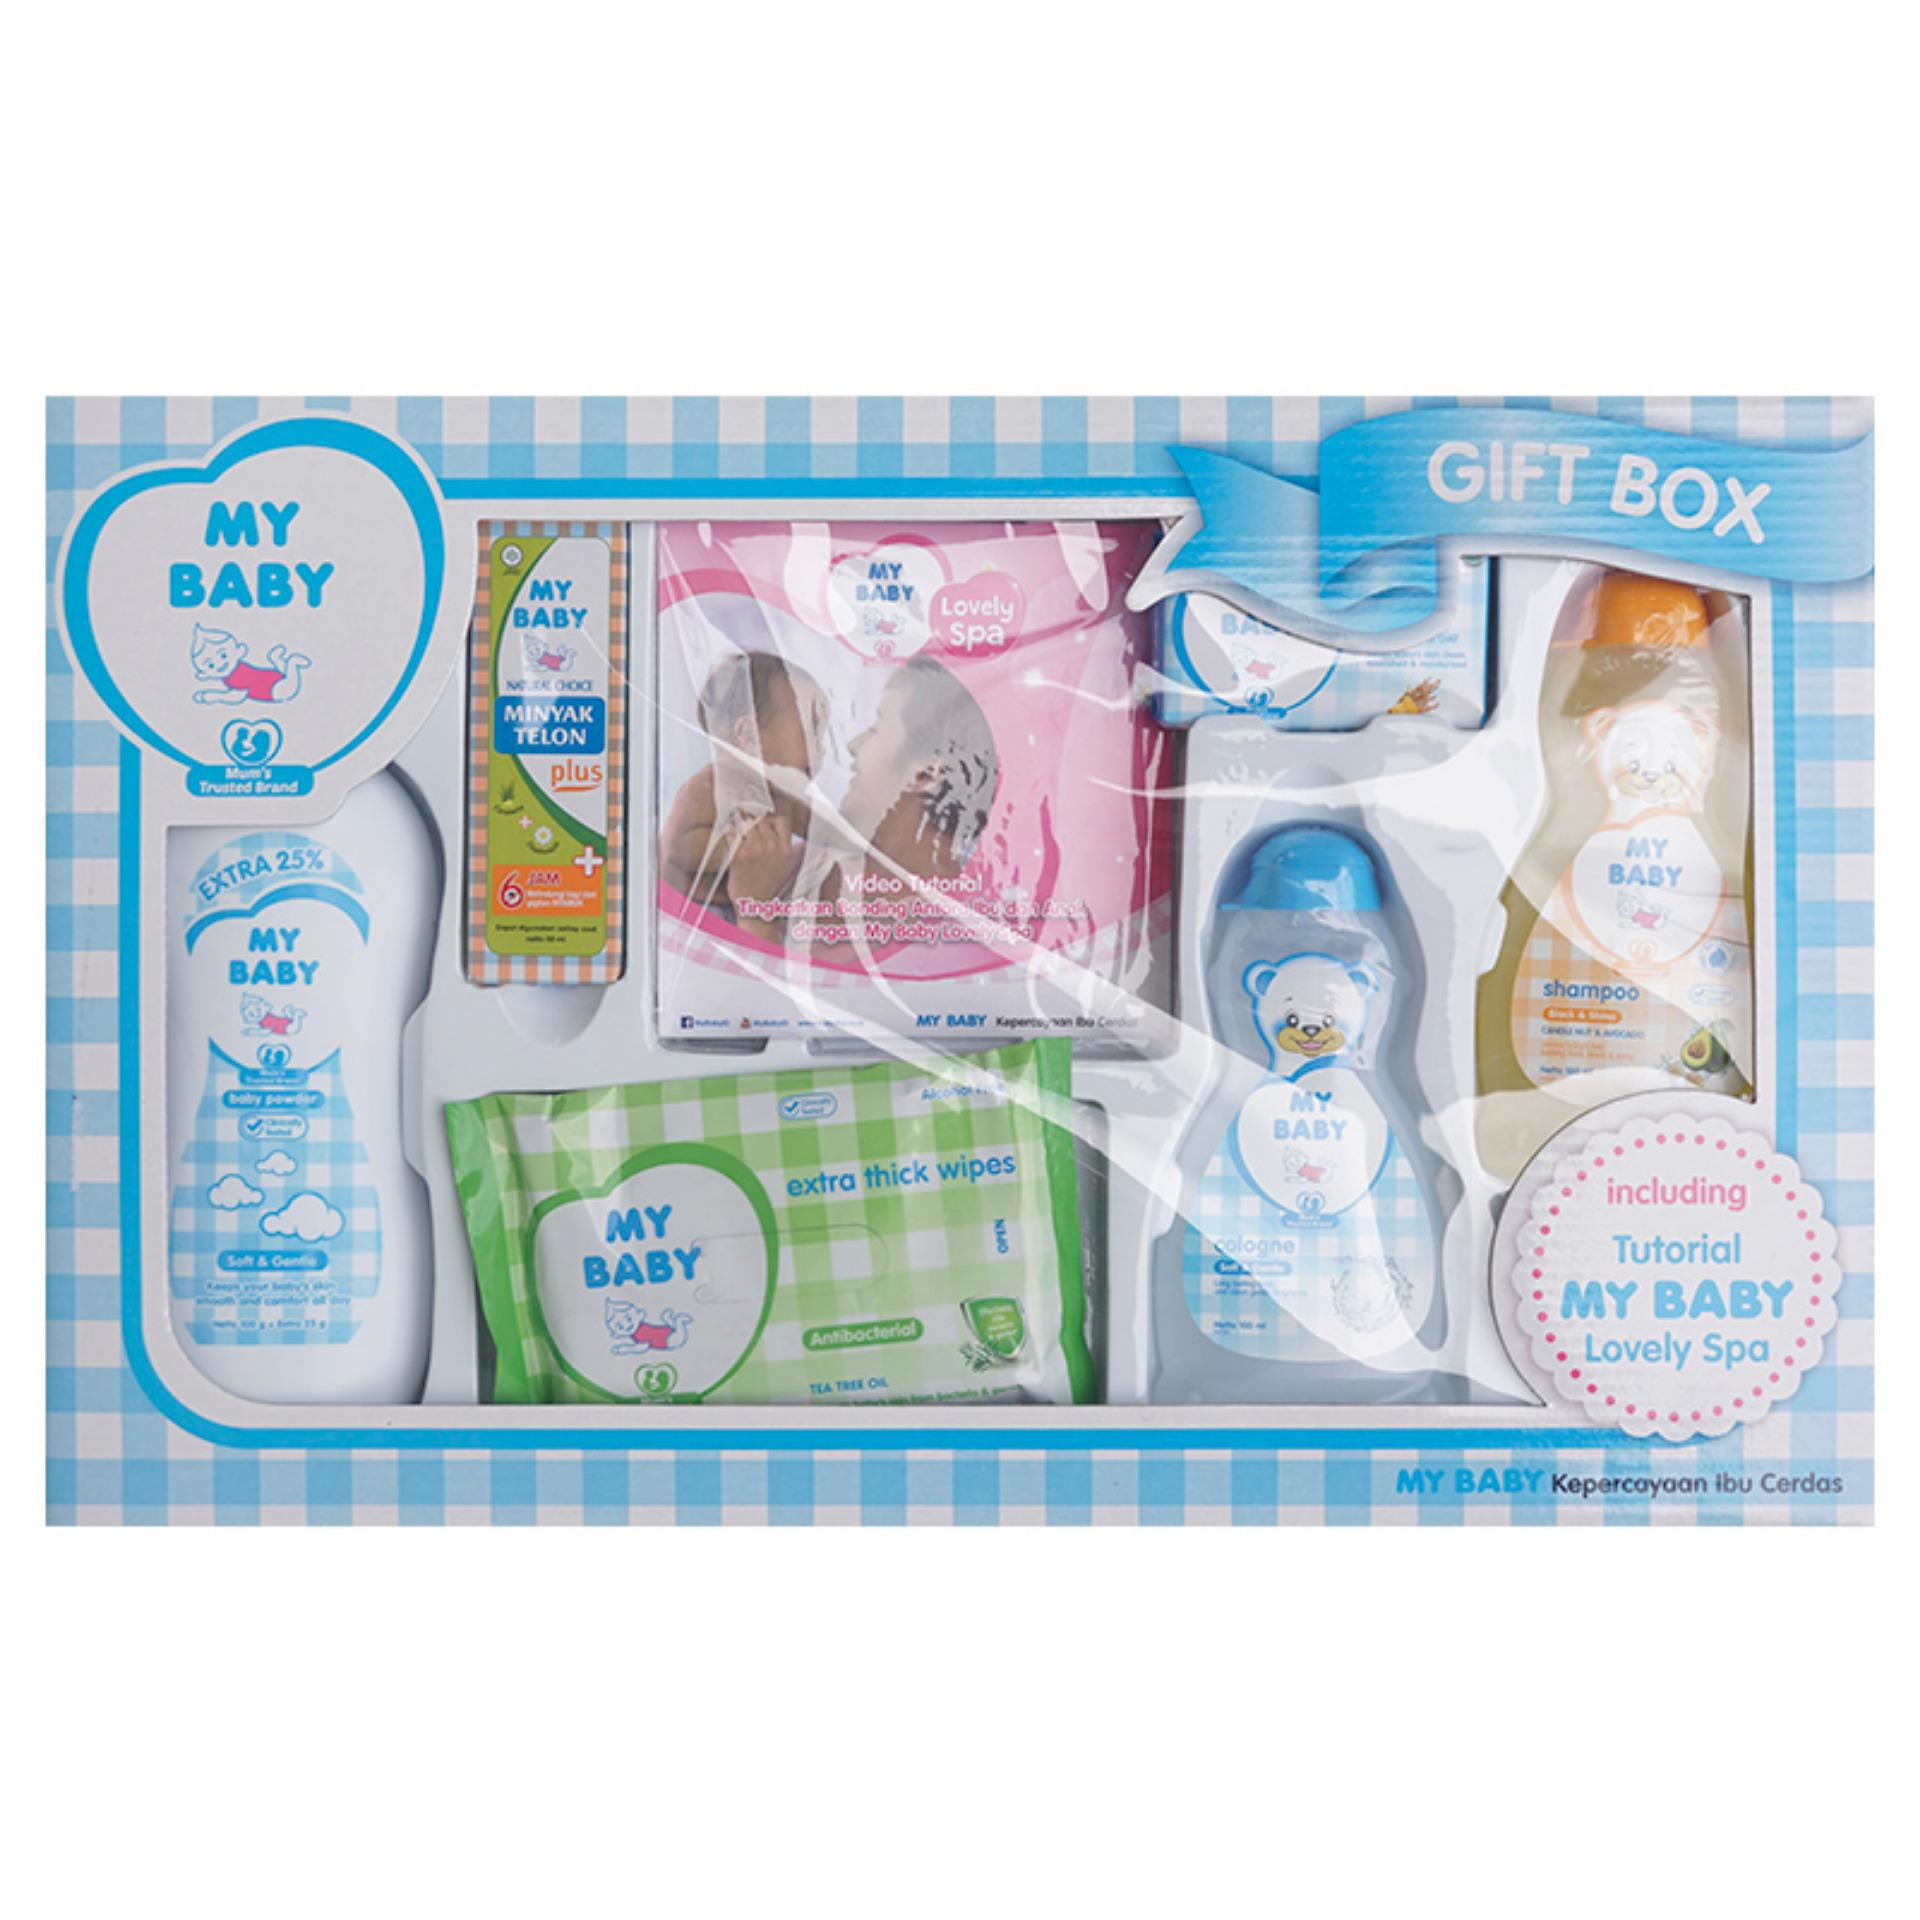 Review My Baby Paket Gift Box Biru Bgk005 Terbaru